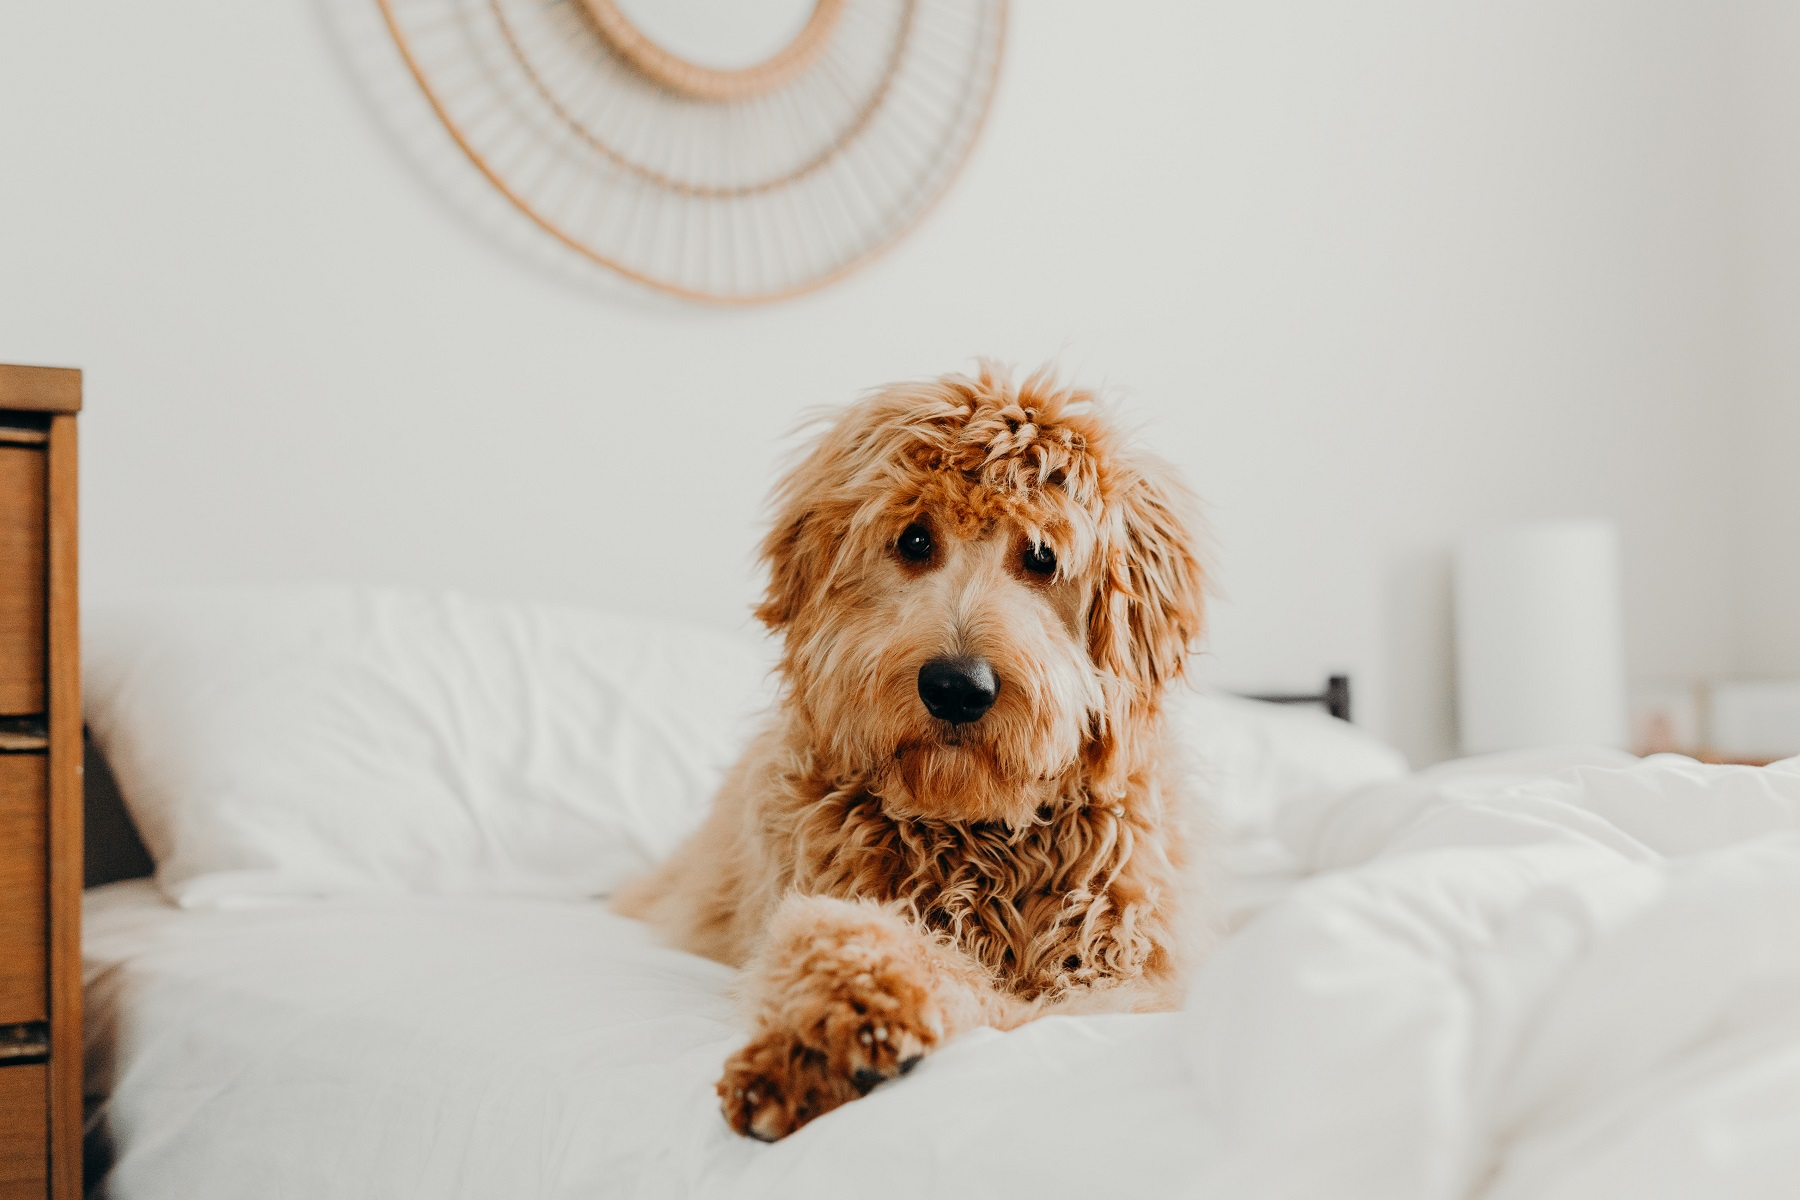 image of a dog laying on a bed